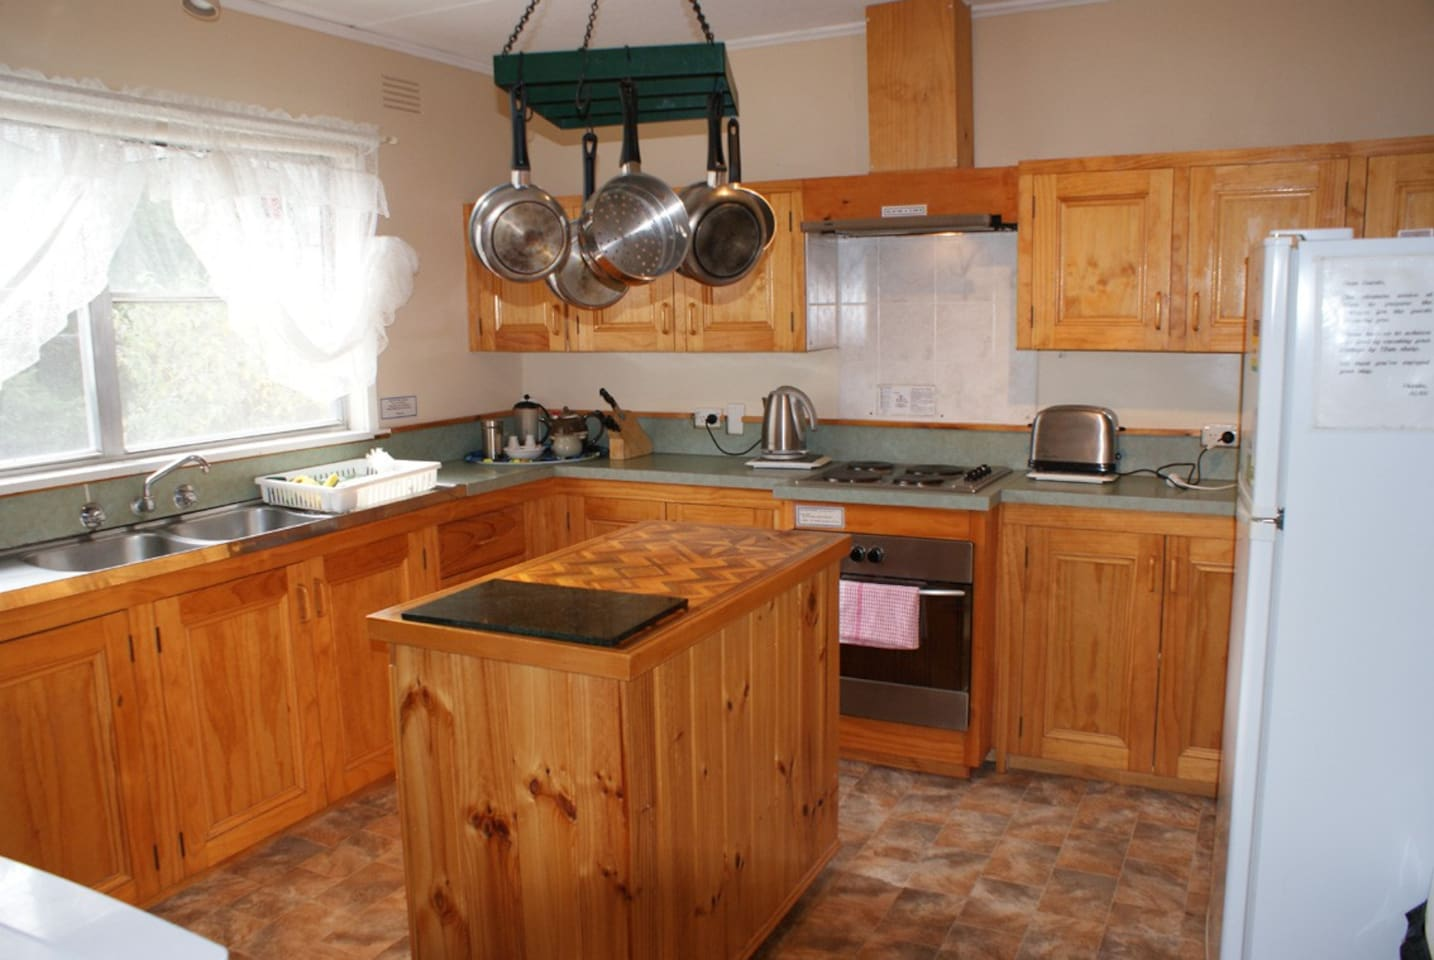 Aaa Granary Accommodation The Last Resort Aaa Granary Rose 4 Bedroom Houses For Rent In Promised Land